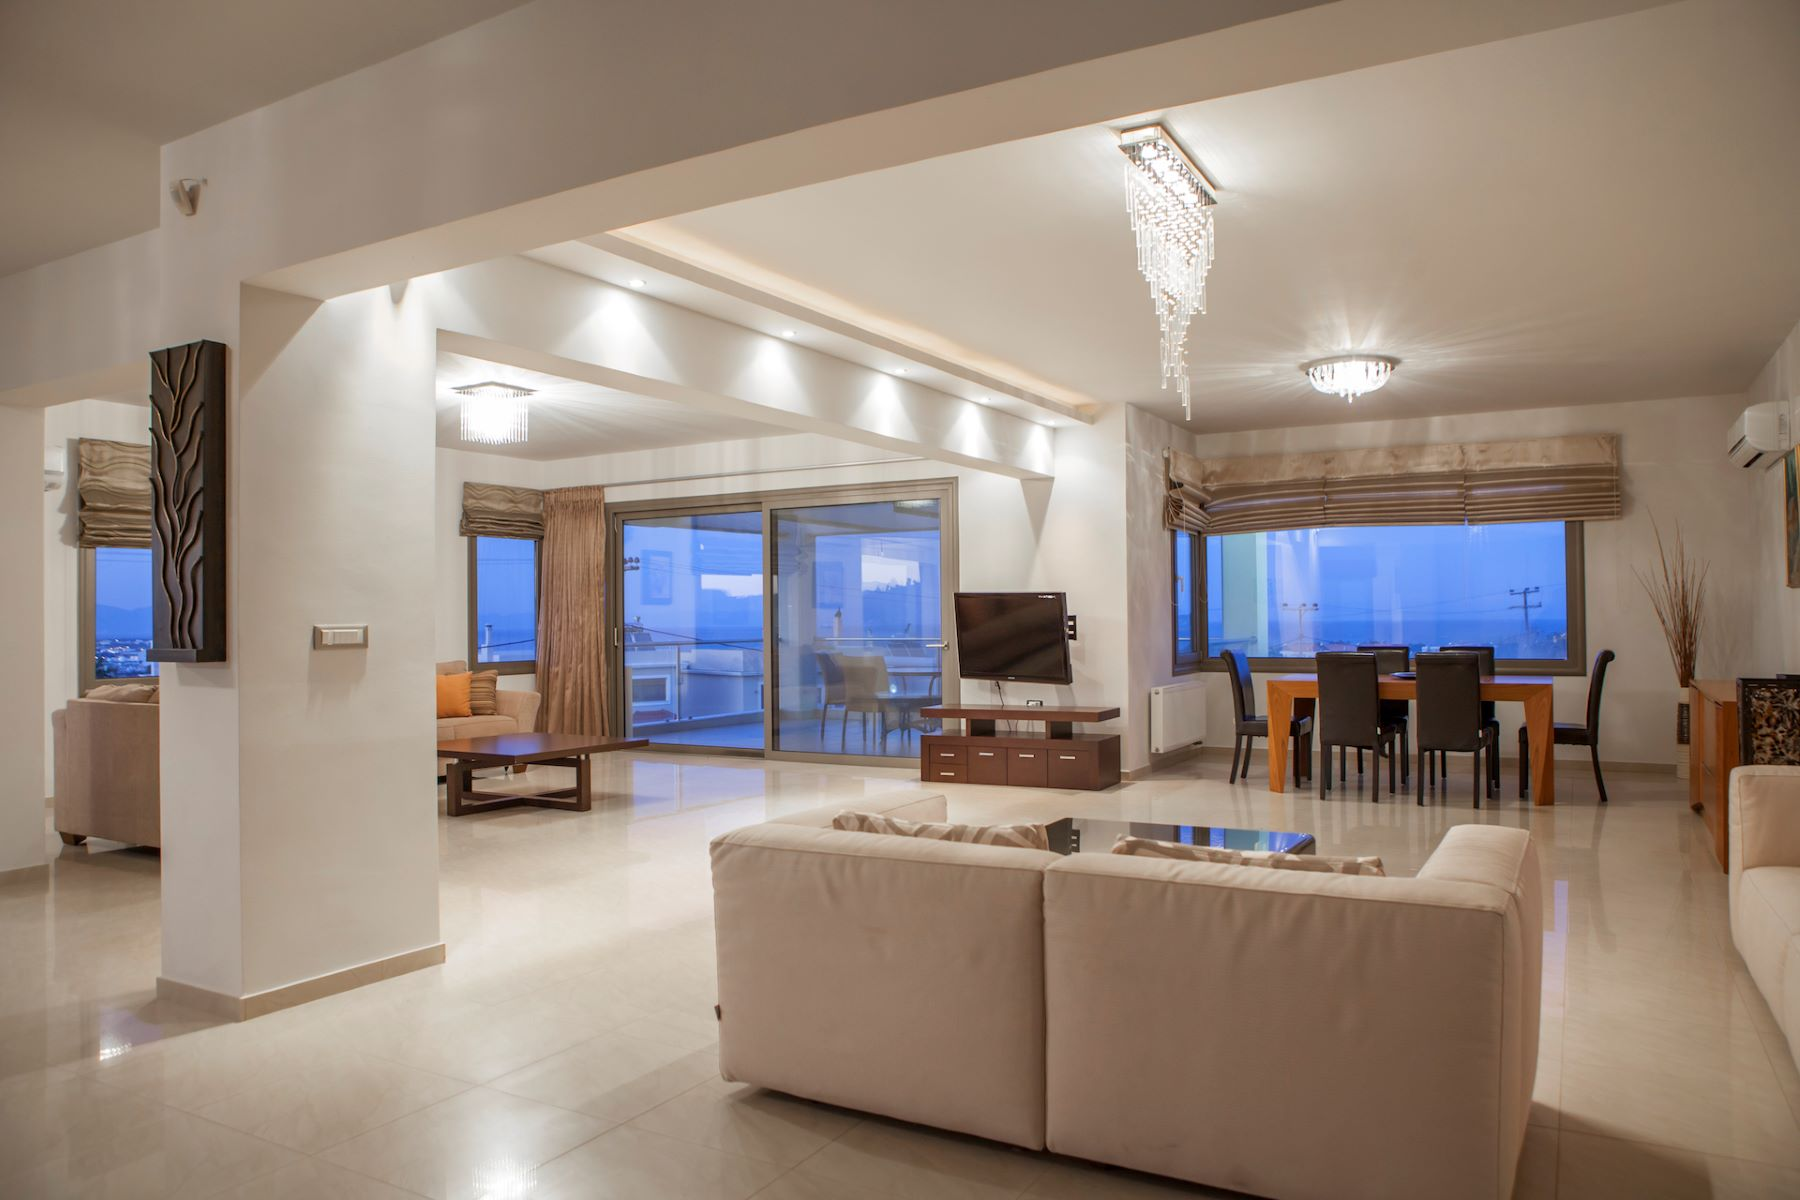 Single Family Home for Sale at Deluxe Living Koskinou Deluxe Living Rhodes, Southern Aegean, 85100 Greece